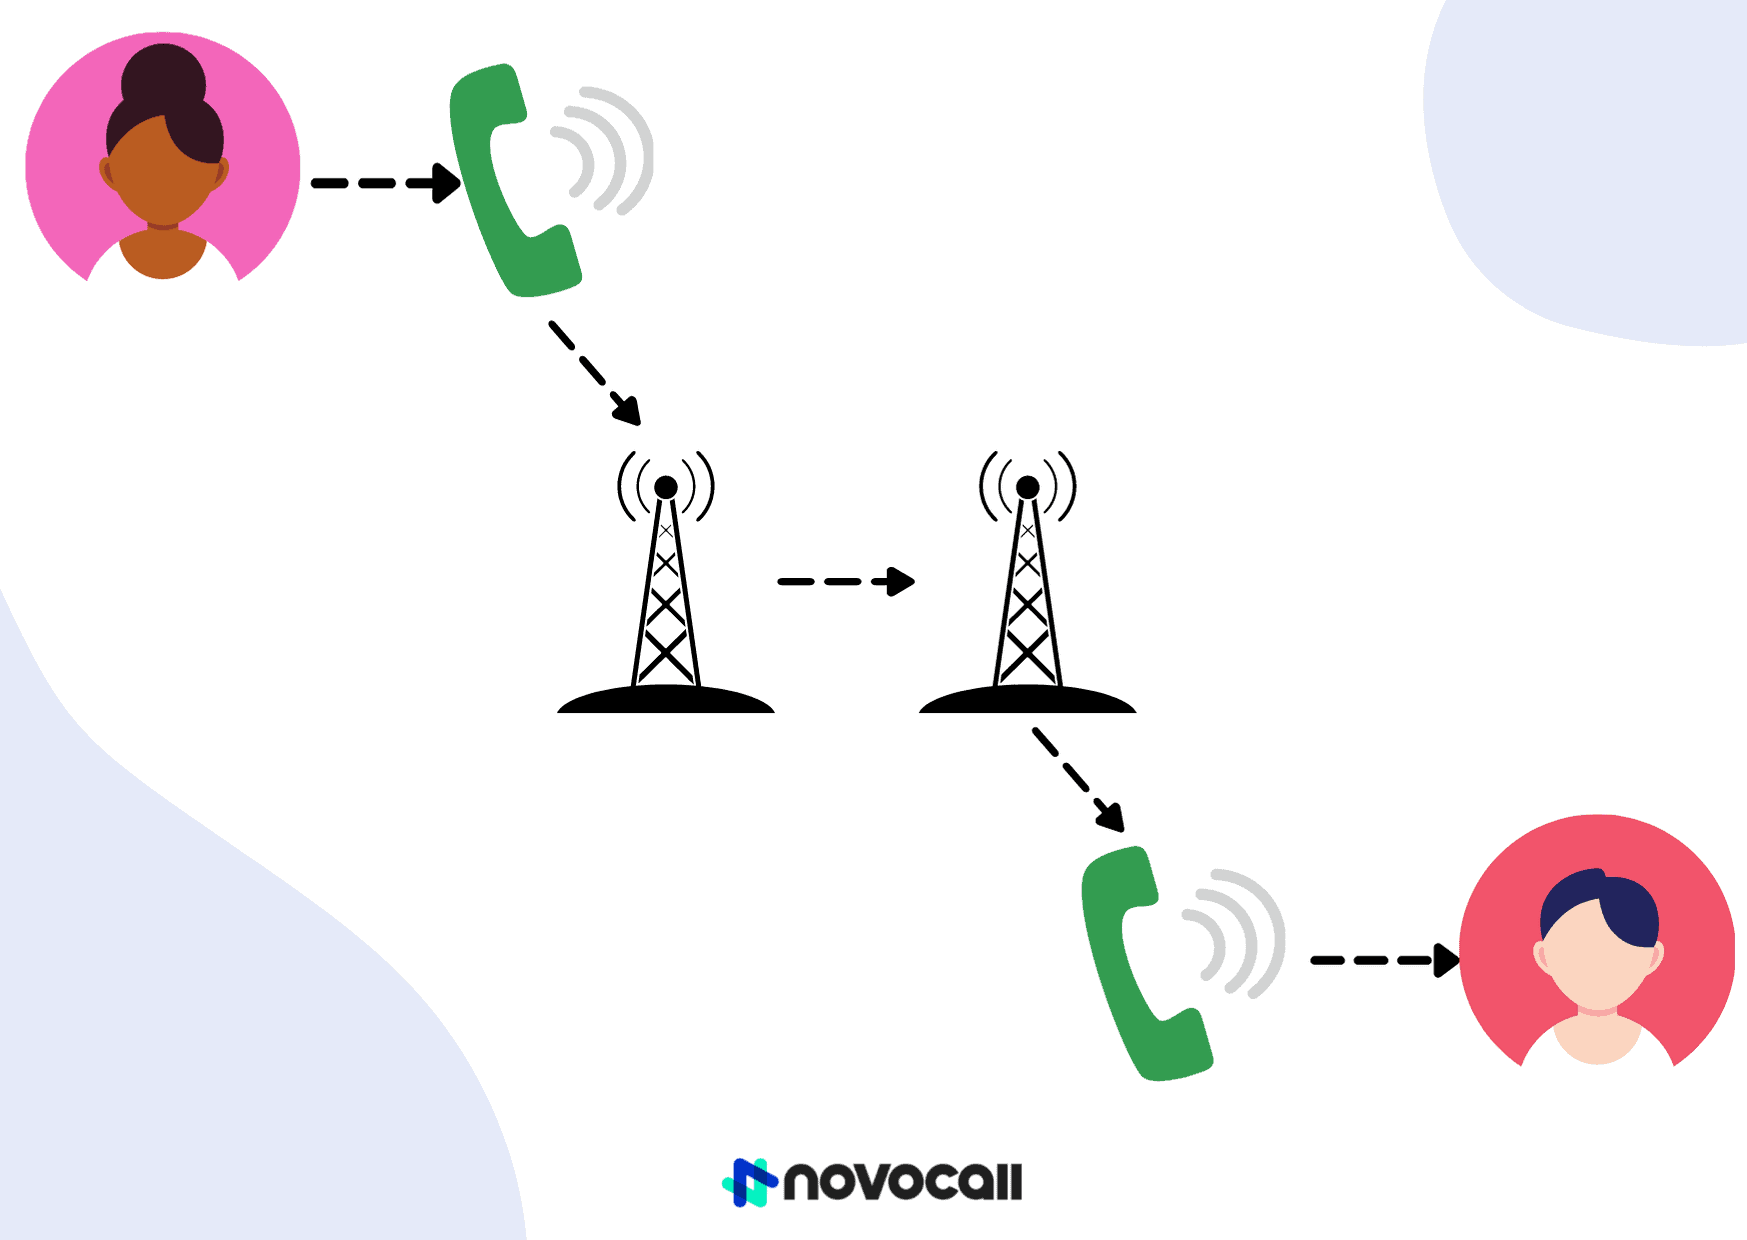 Novocall's infographic on how landline phone systems work.